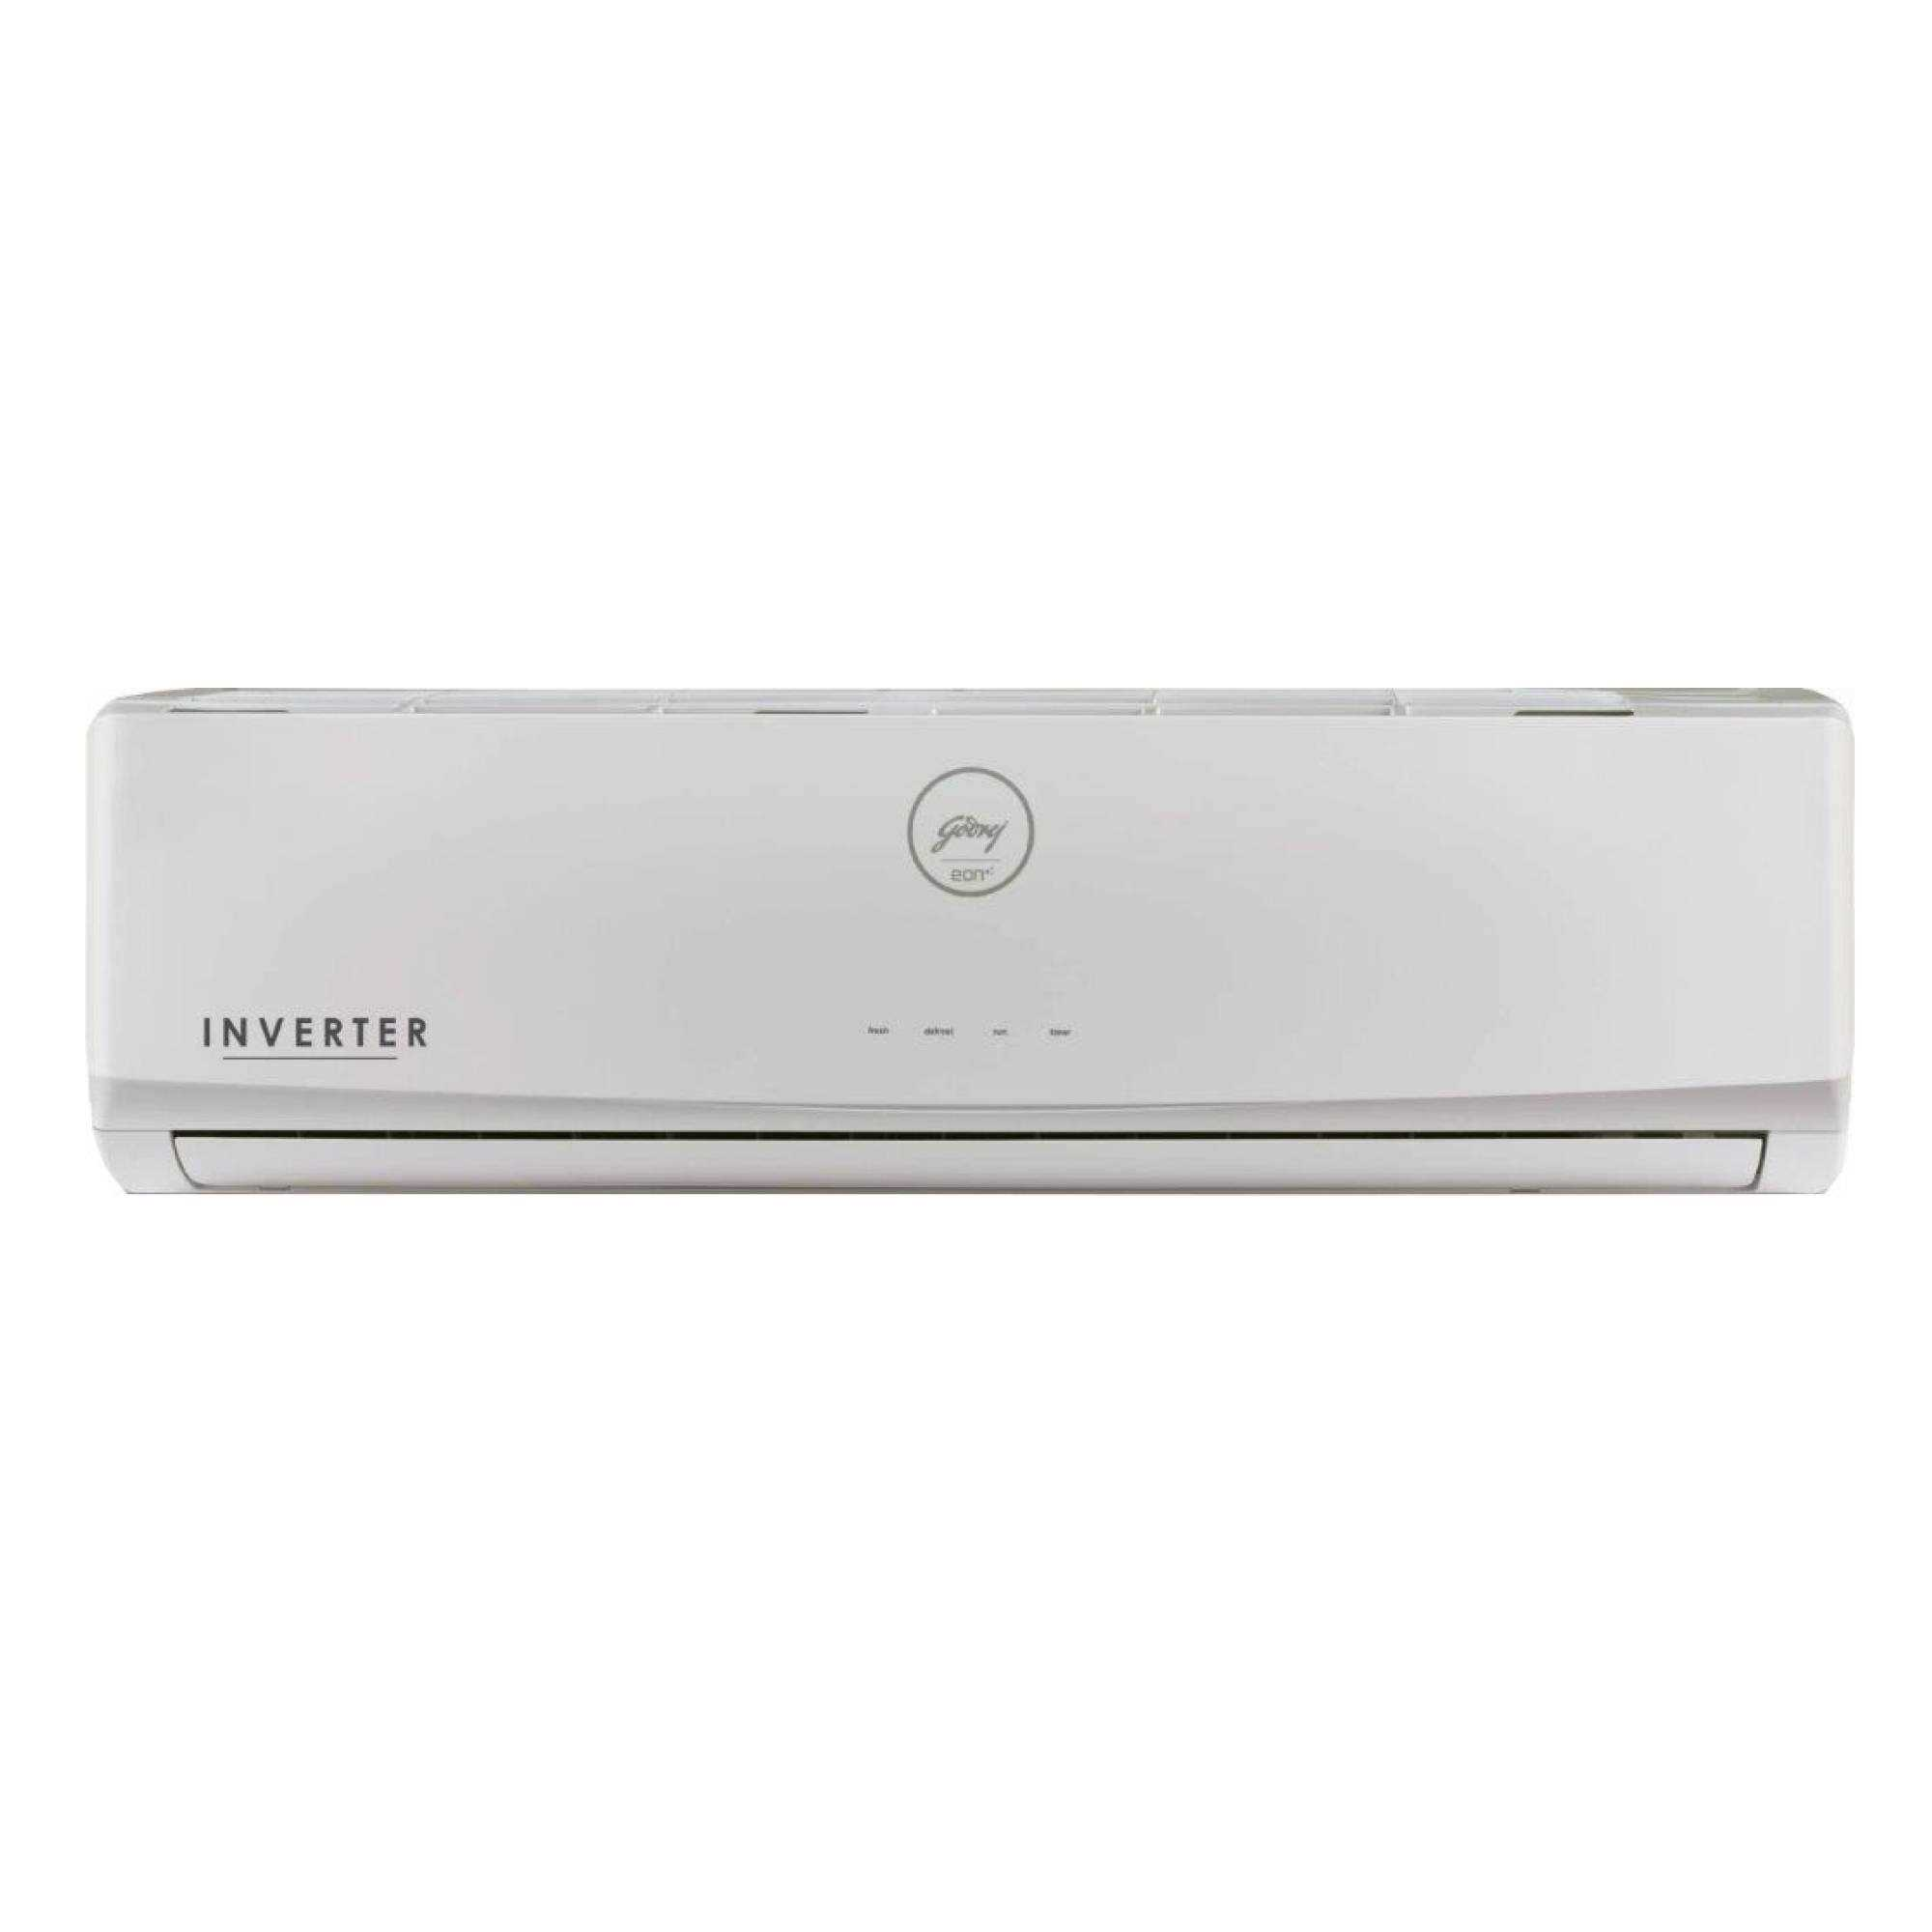 #2A2B20 Godrej Air Conditioner Price List 2017 In India Godrej  Best 4823 Inverter Window Ac photos with 2000x2000 px on helpvideos.info - Air Conditioners, Air Coolers and more